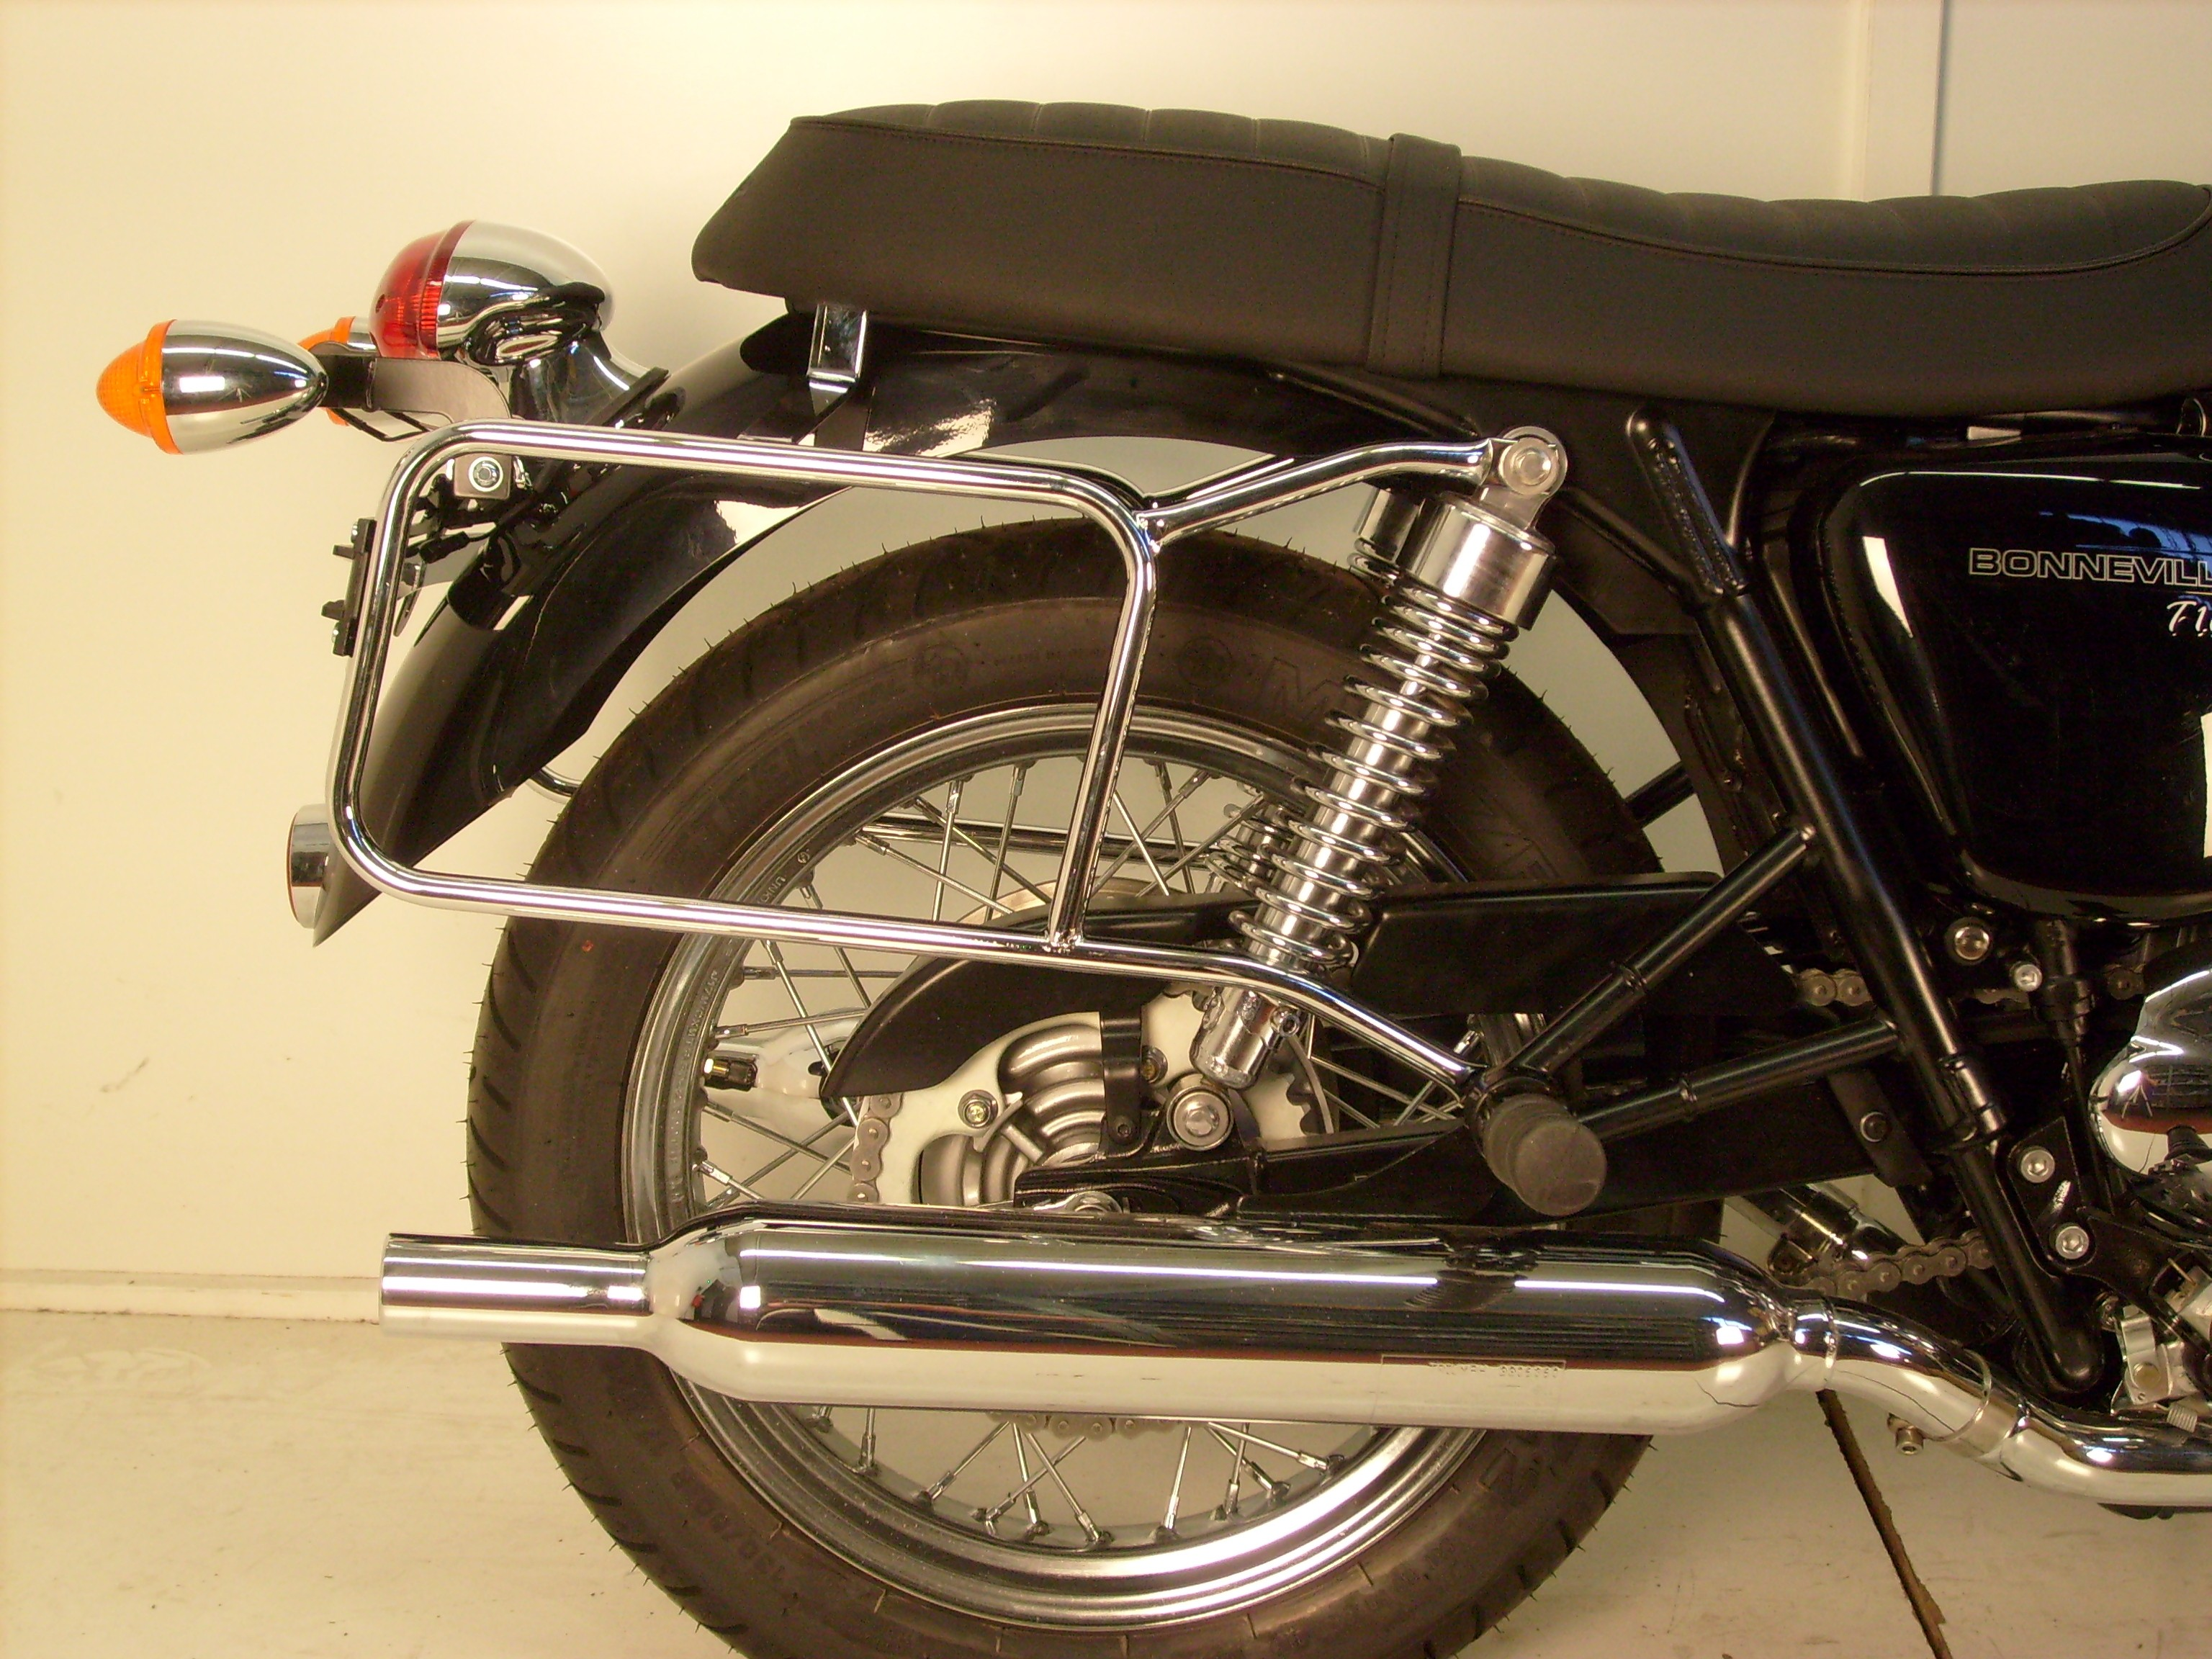 Hepco & Becker Pannier Frames - Chrome for Bonneville and T100 and SE 2000-2015